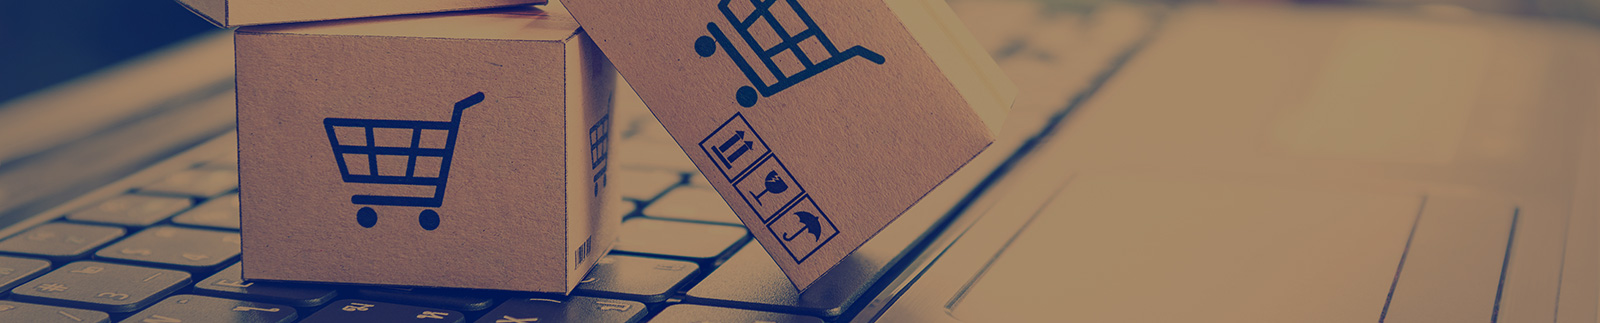 The stats behind ecommerce growth and how to setup your own online store